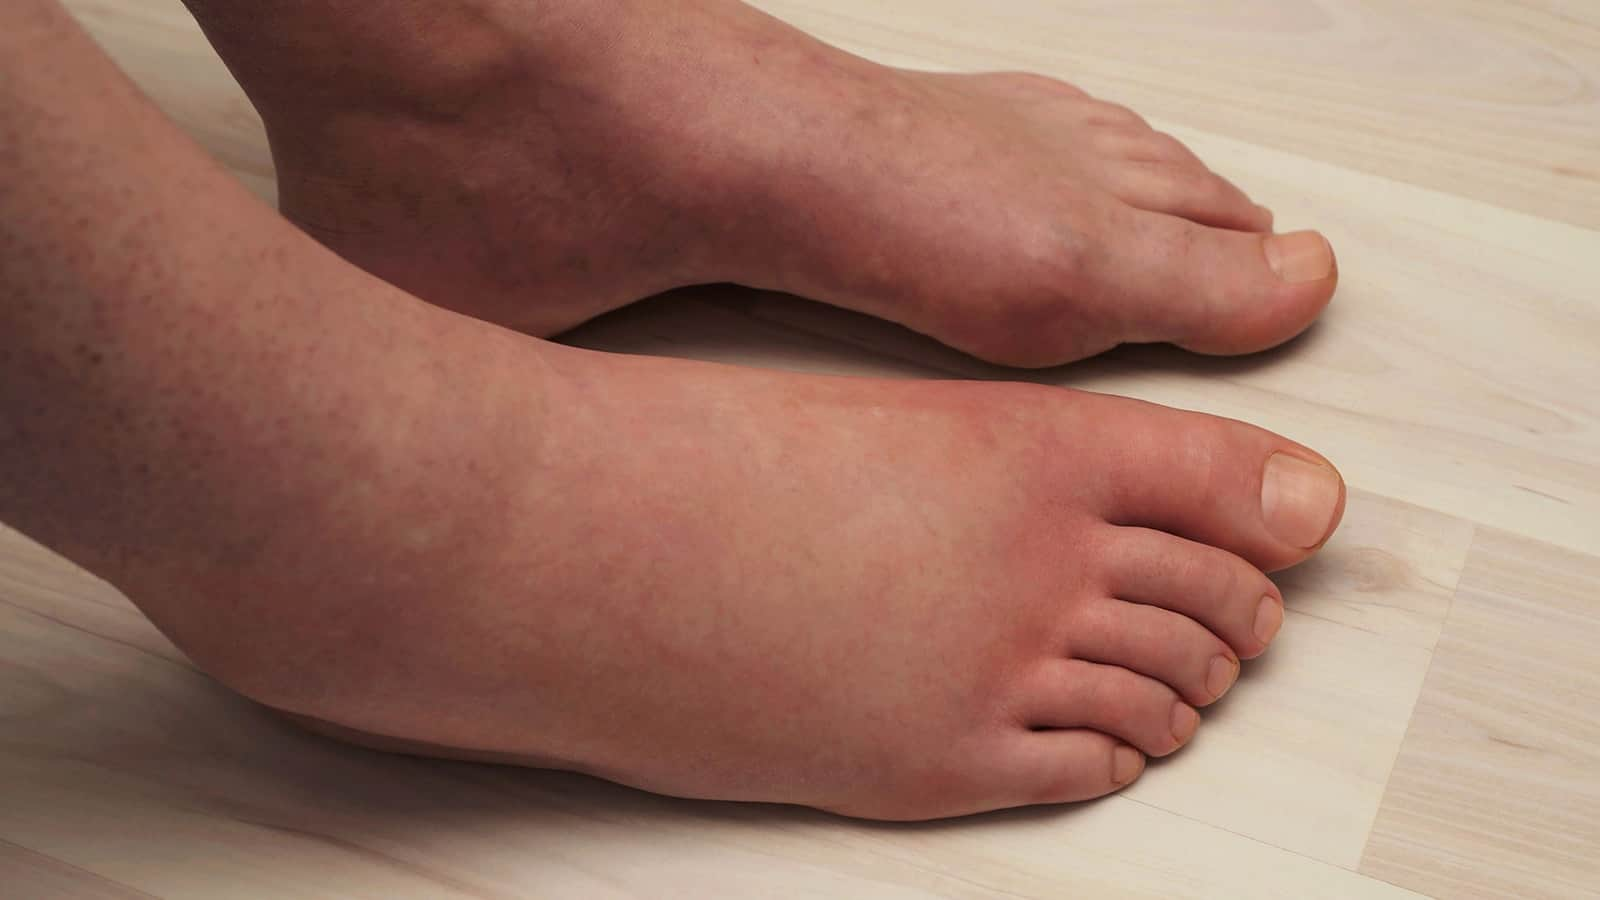 Why there are swelling of the legs, and how to get rid of them